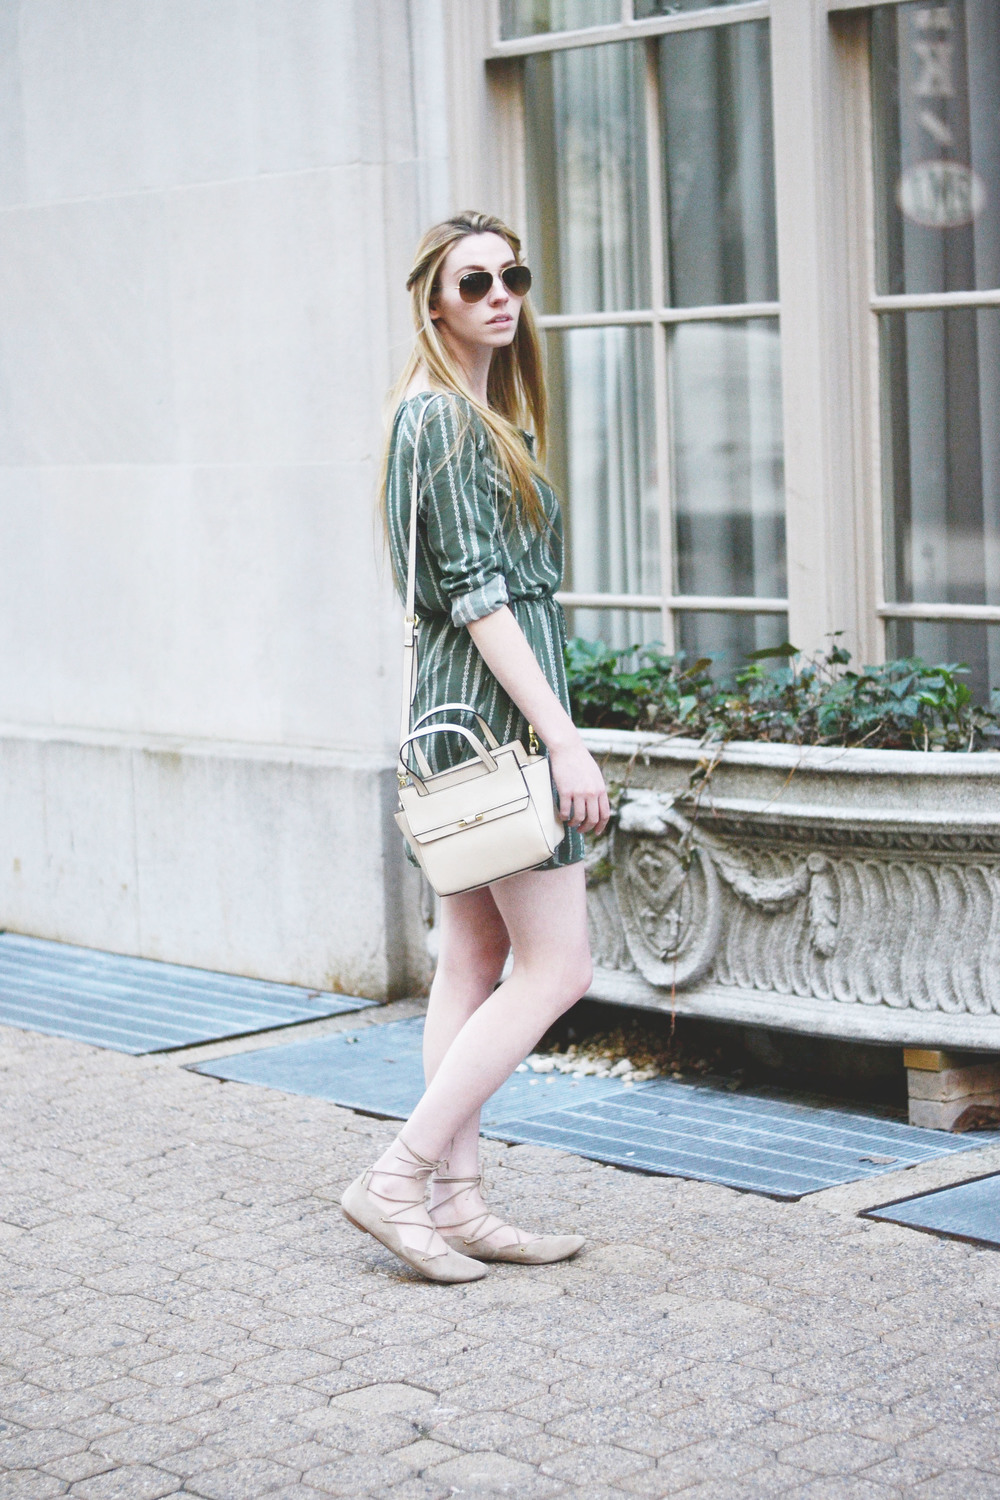 Palm Green Shirtdress (via Chic Now)